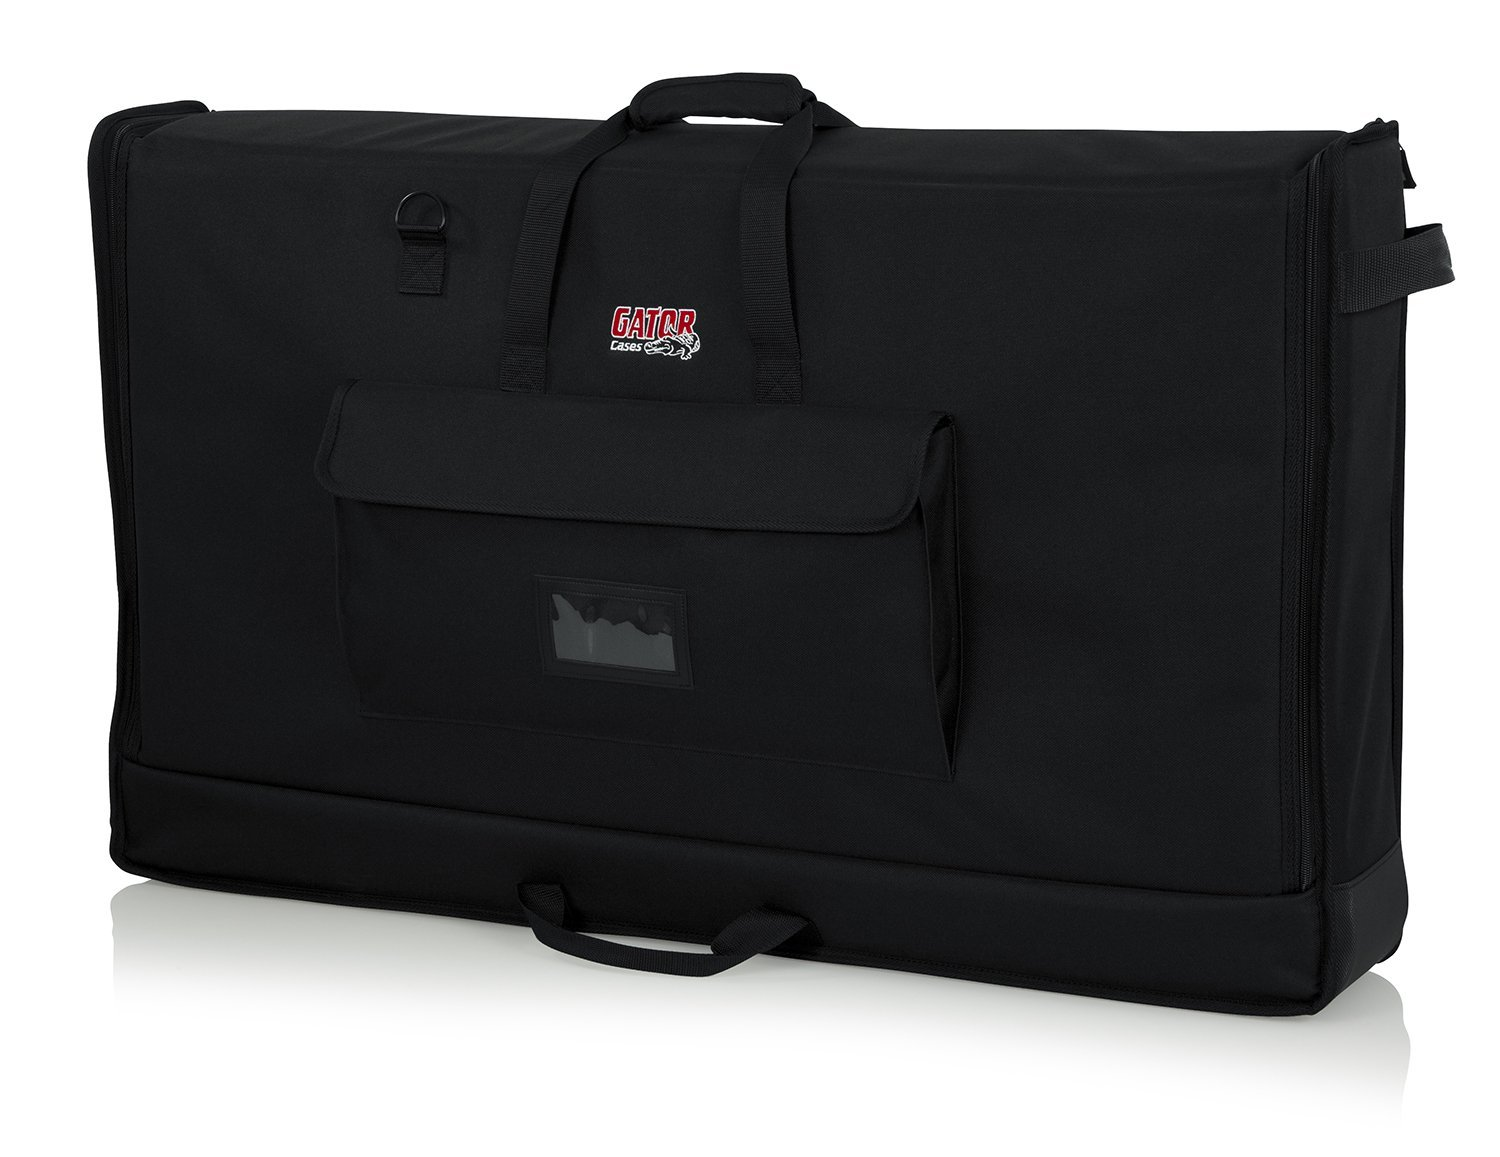 Gator Cases Padded Nylon Carry Tote Bag for Transporting LCD Screens, Monitors and TVs Between 40''- 45''; (G-LCD-TOTE-LG)